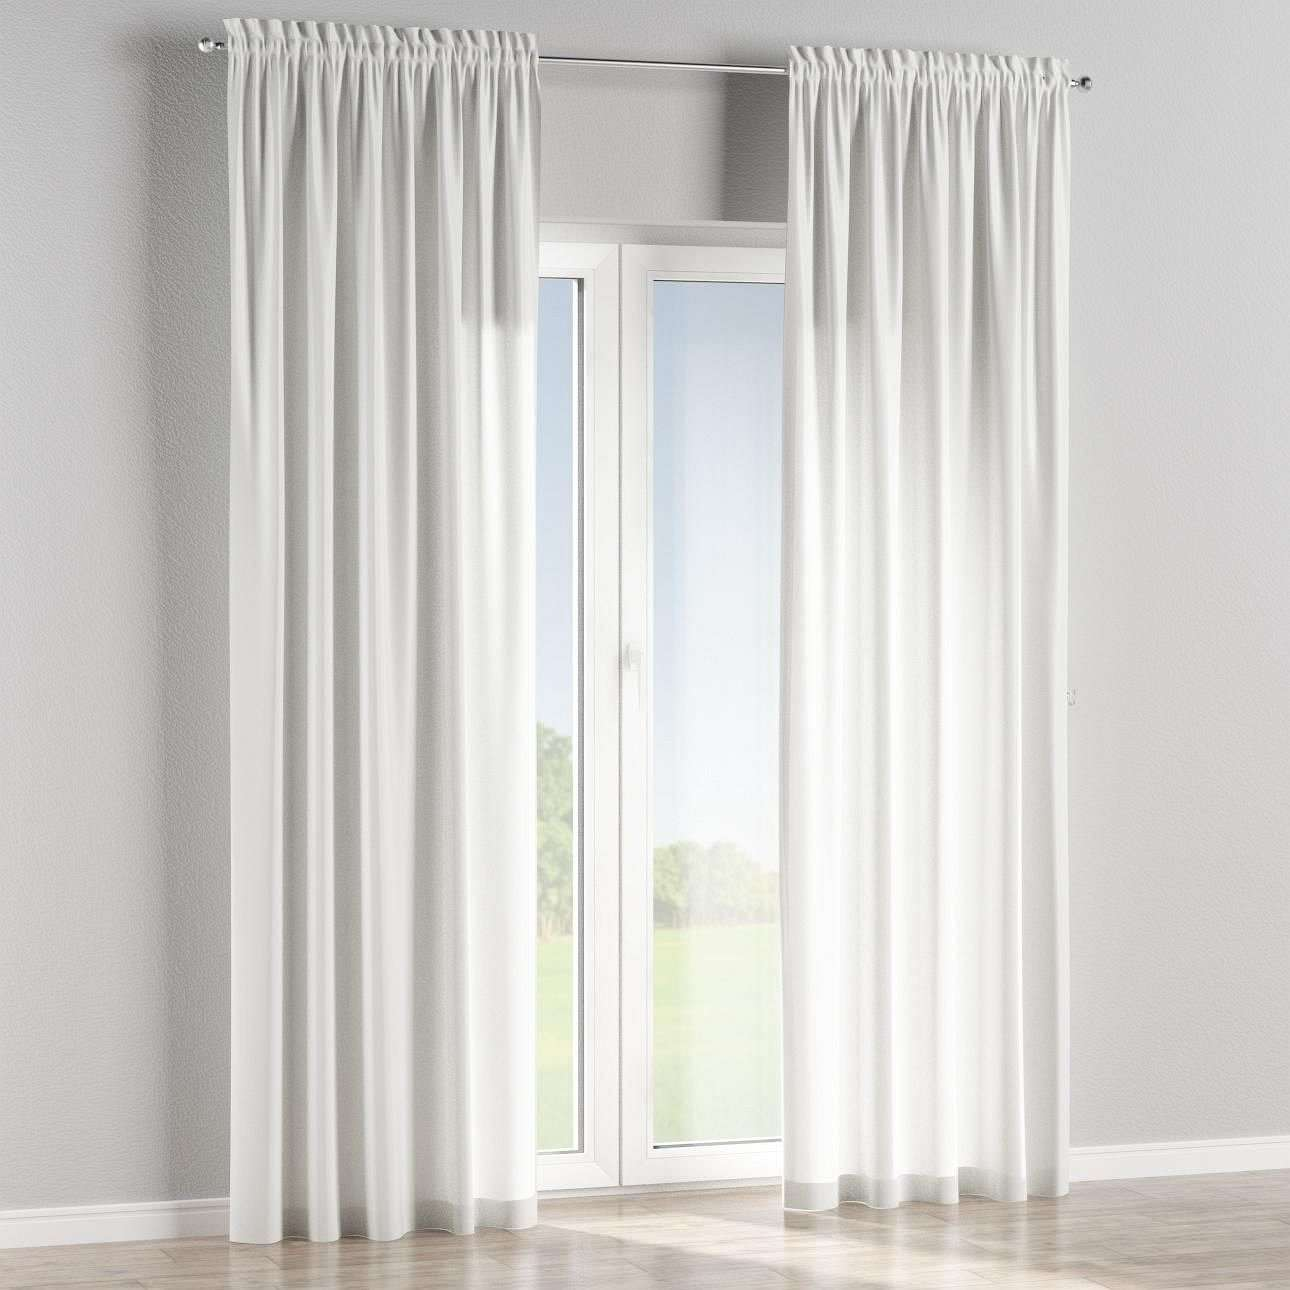 Slot and frill lined curtains in collection Arcana, fabric: 102-02